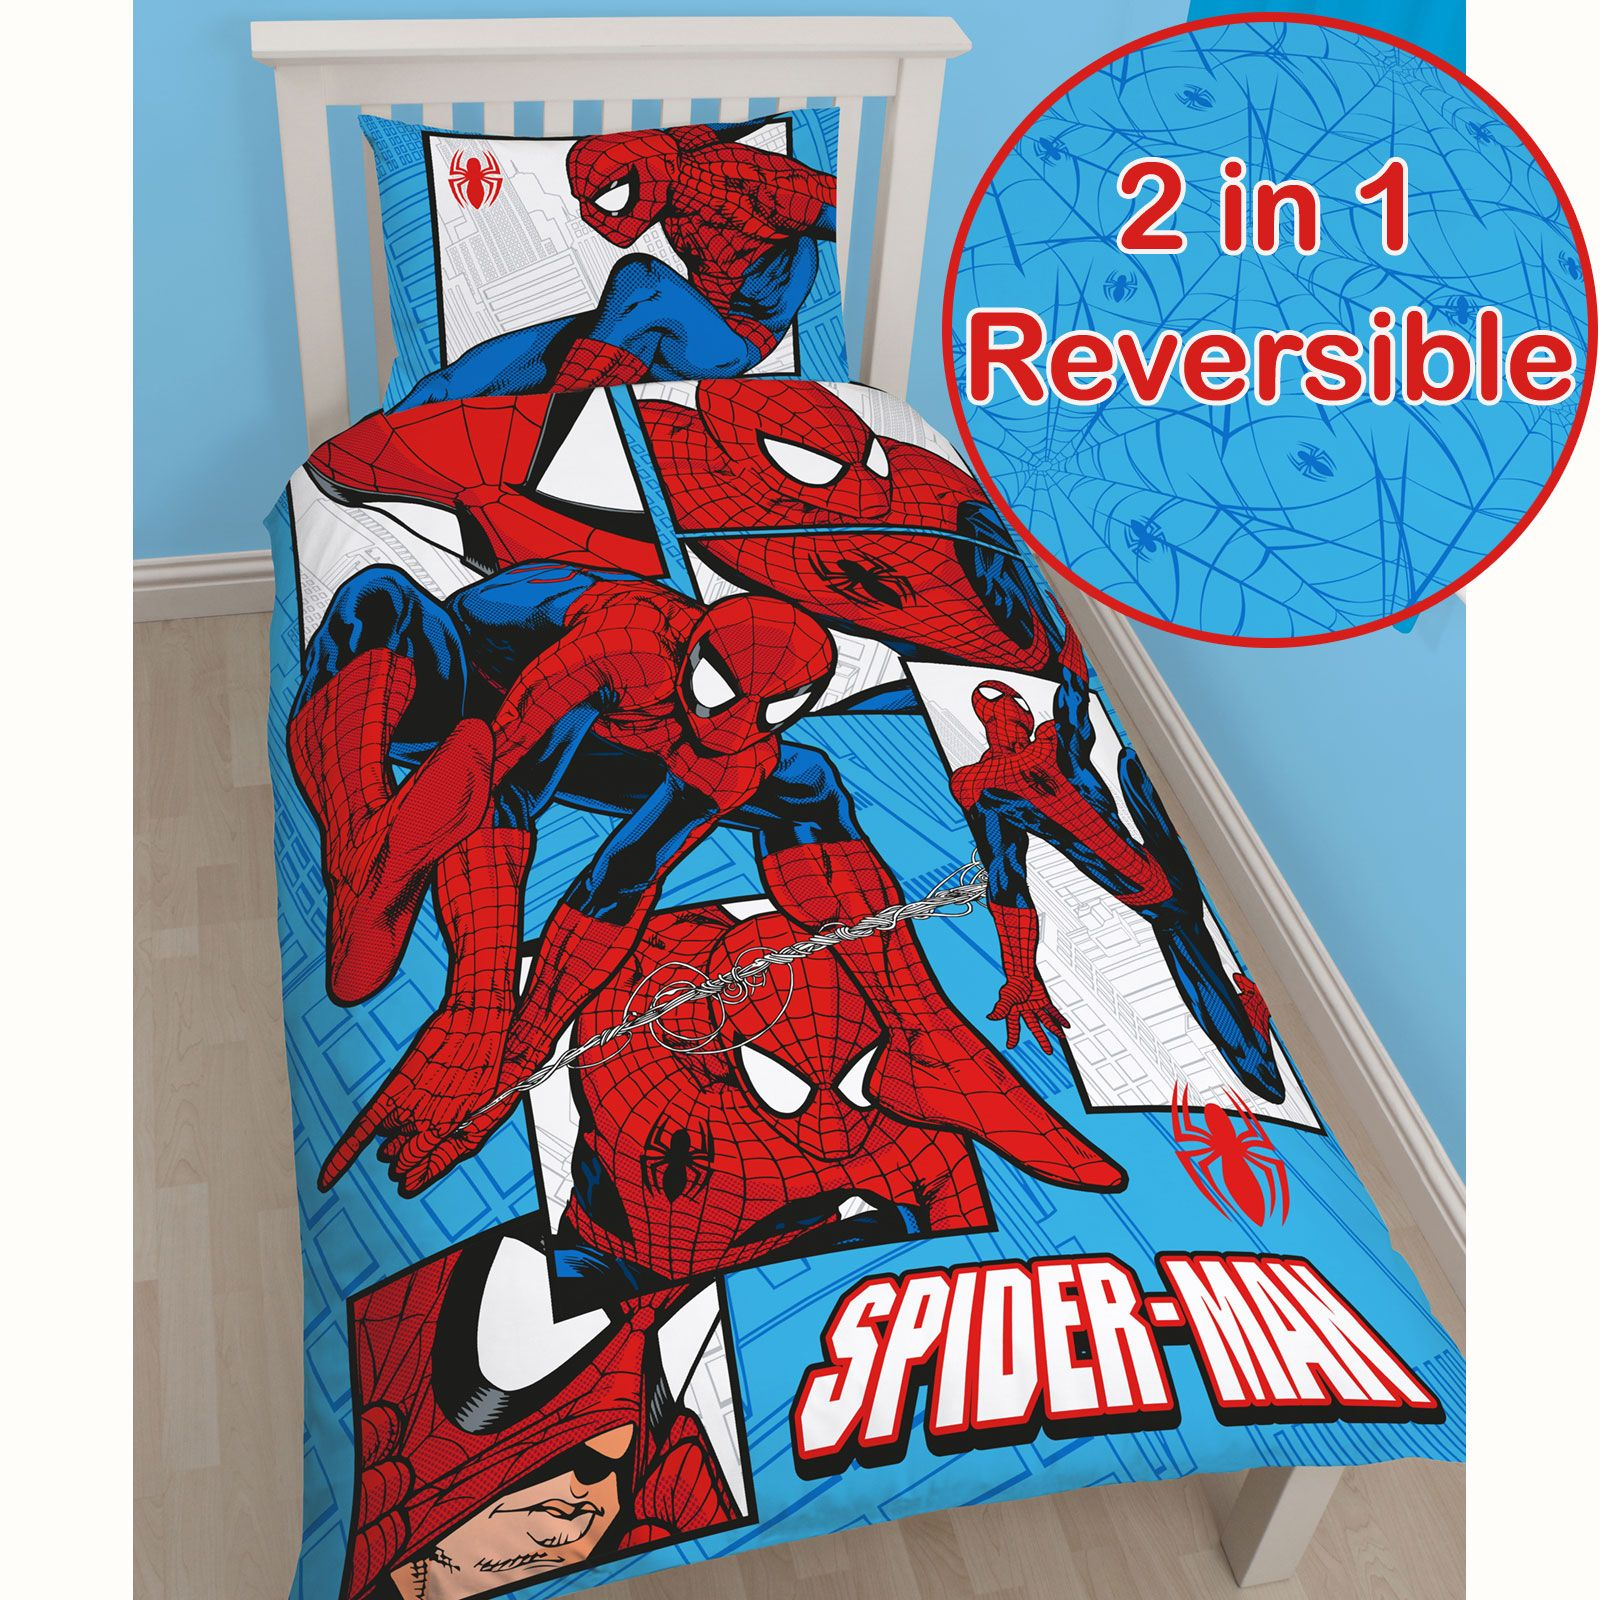 Spiderman parker bedroom range fleece blanket 54 72 - Letto di spiderman ...